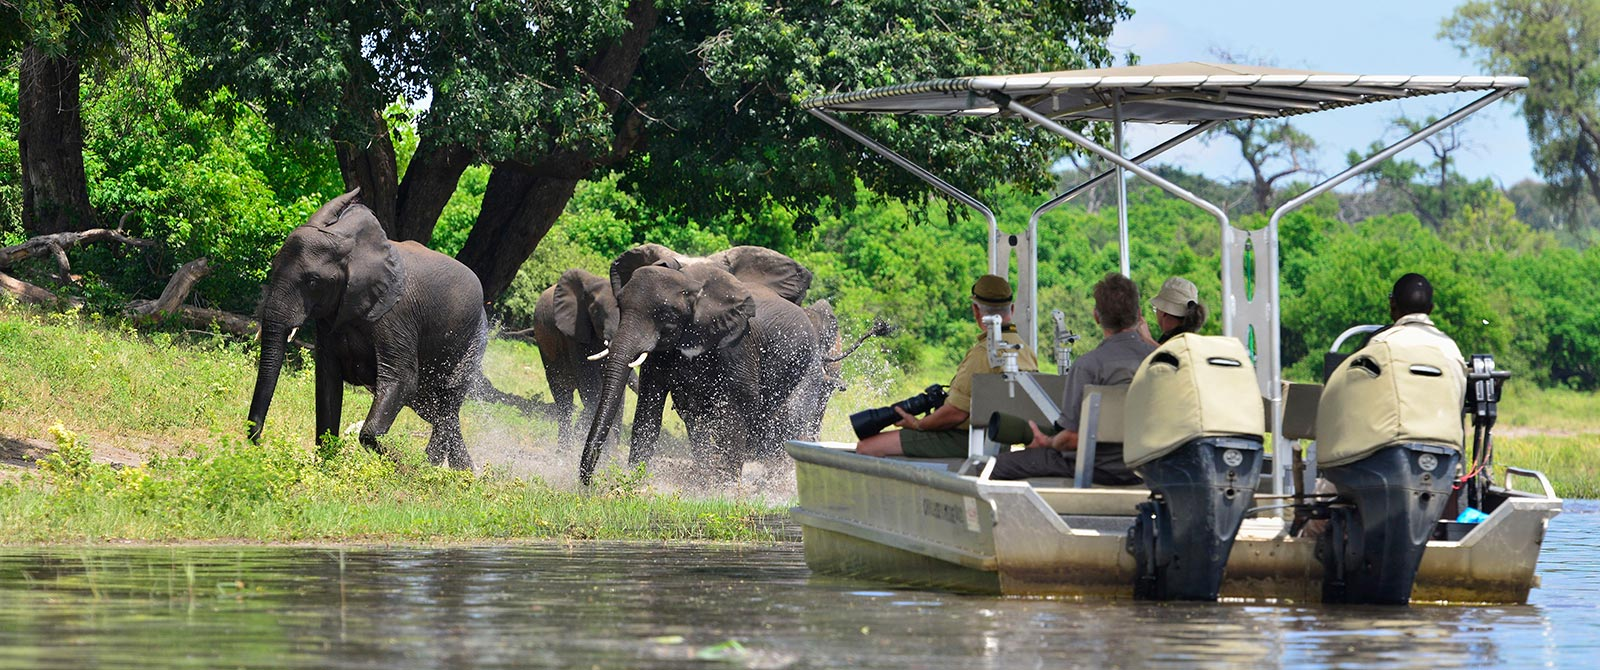 Elephants in the Chobe River - Excursion from Zambezi Queen River Cruise